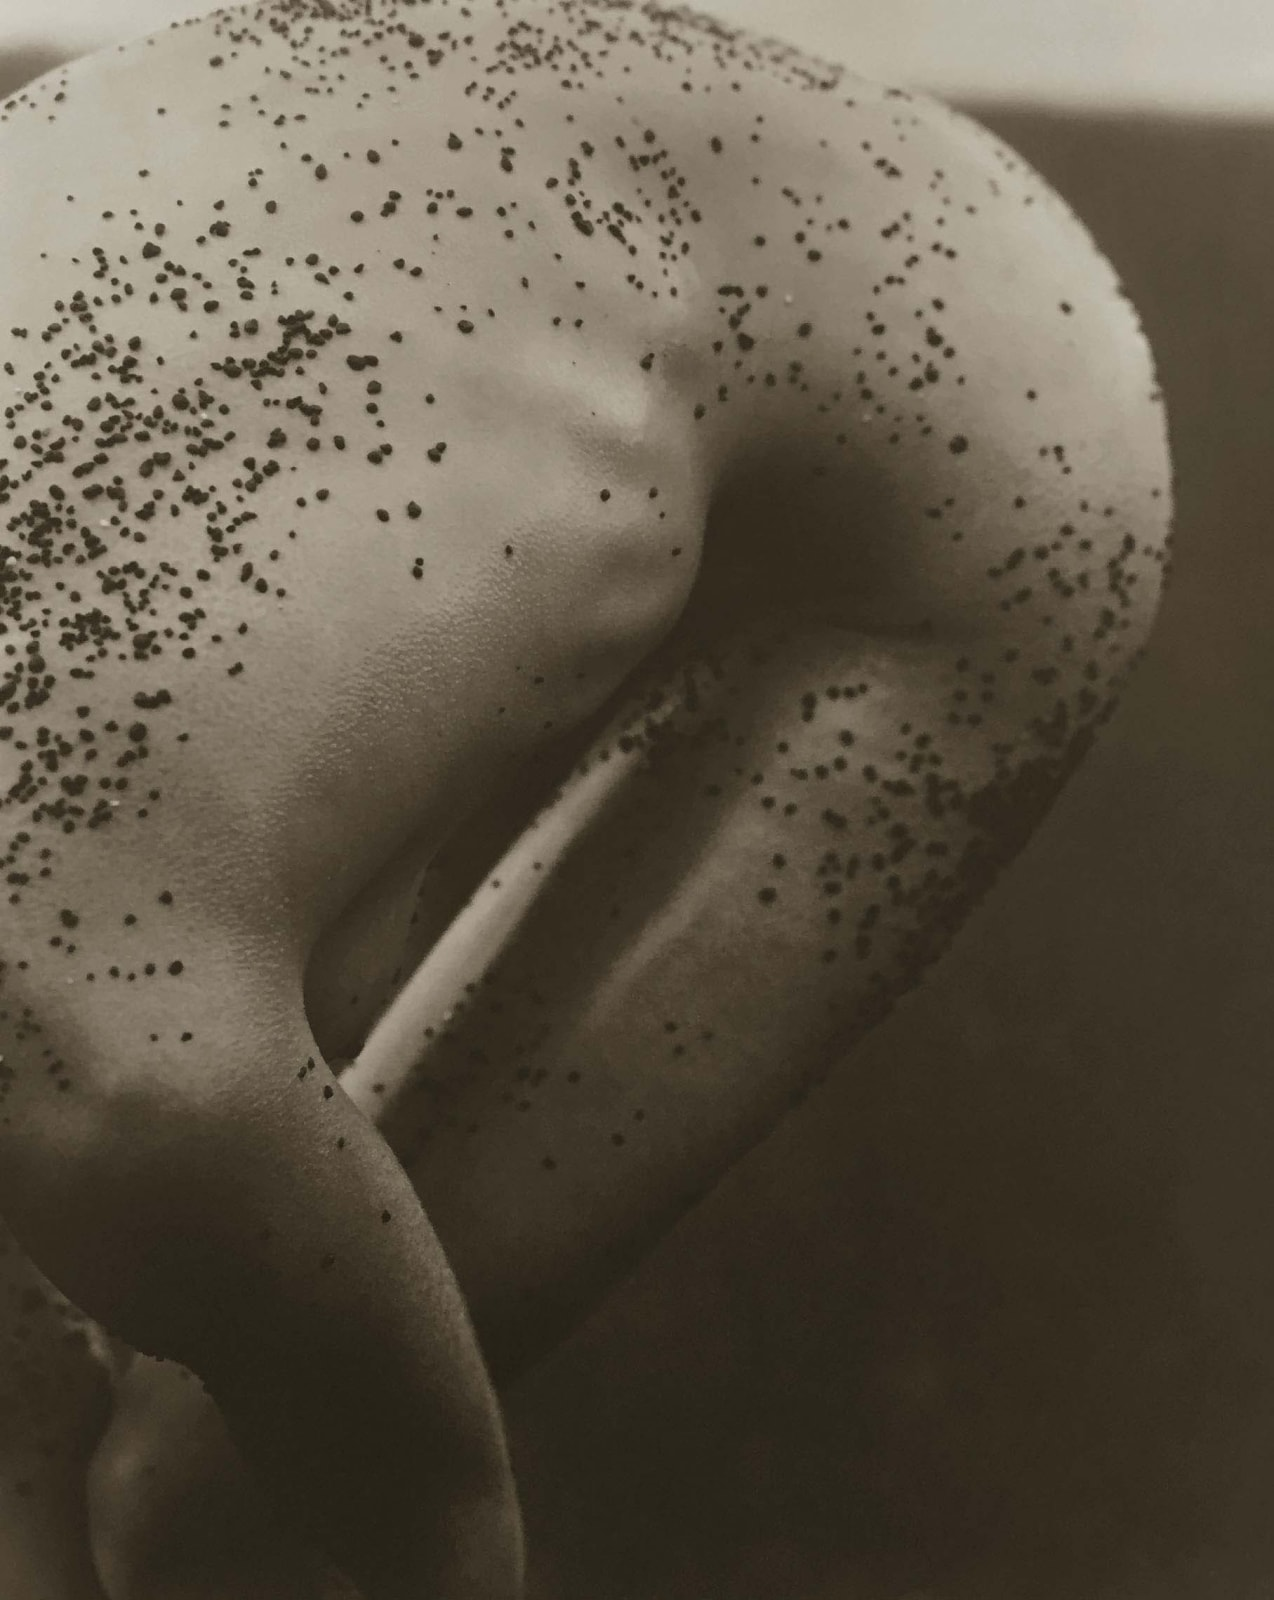 Herb RItts photograph of female torso with black sand, Hawaii